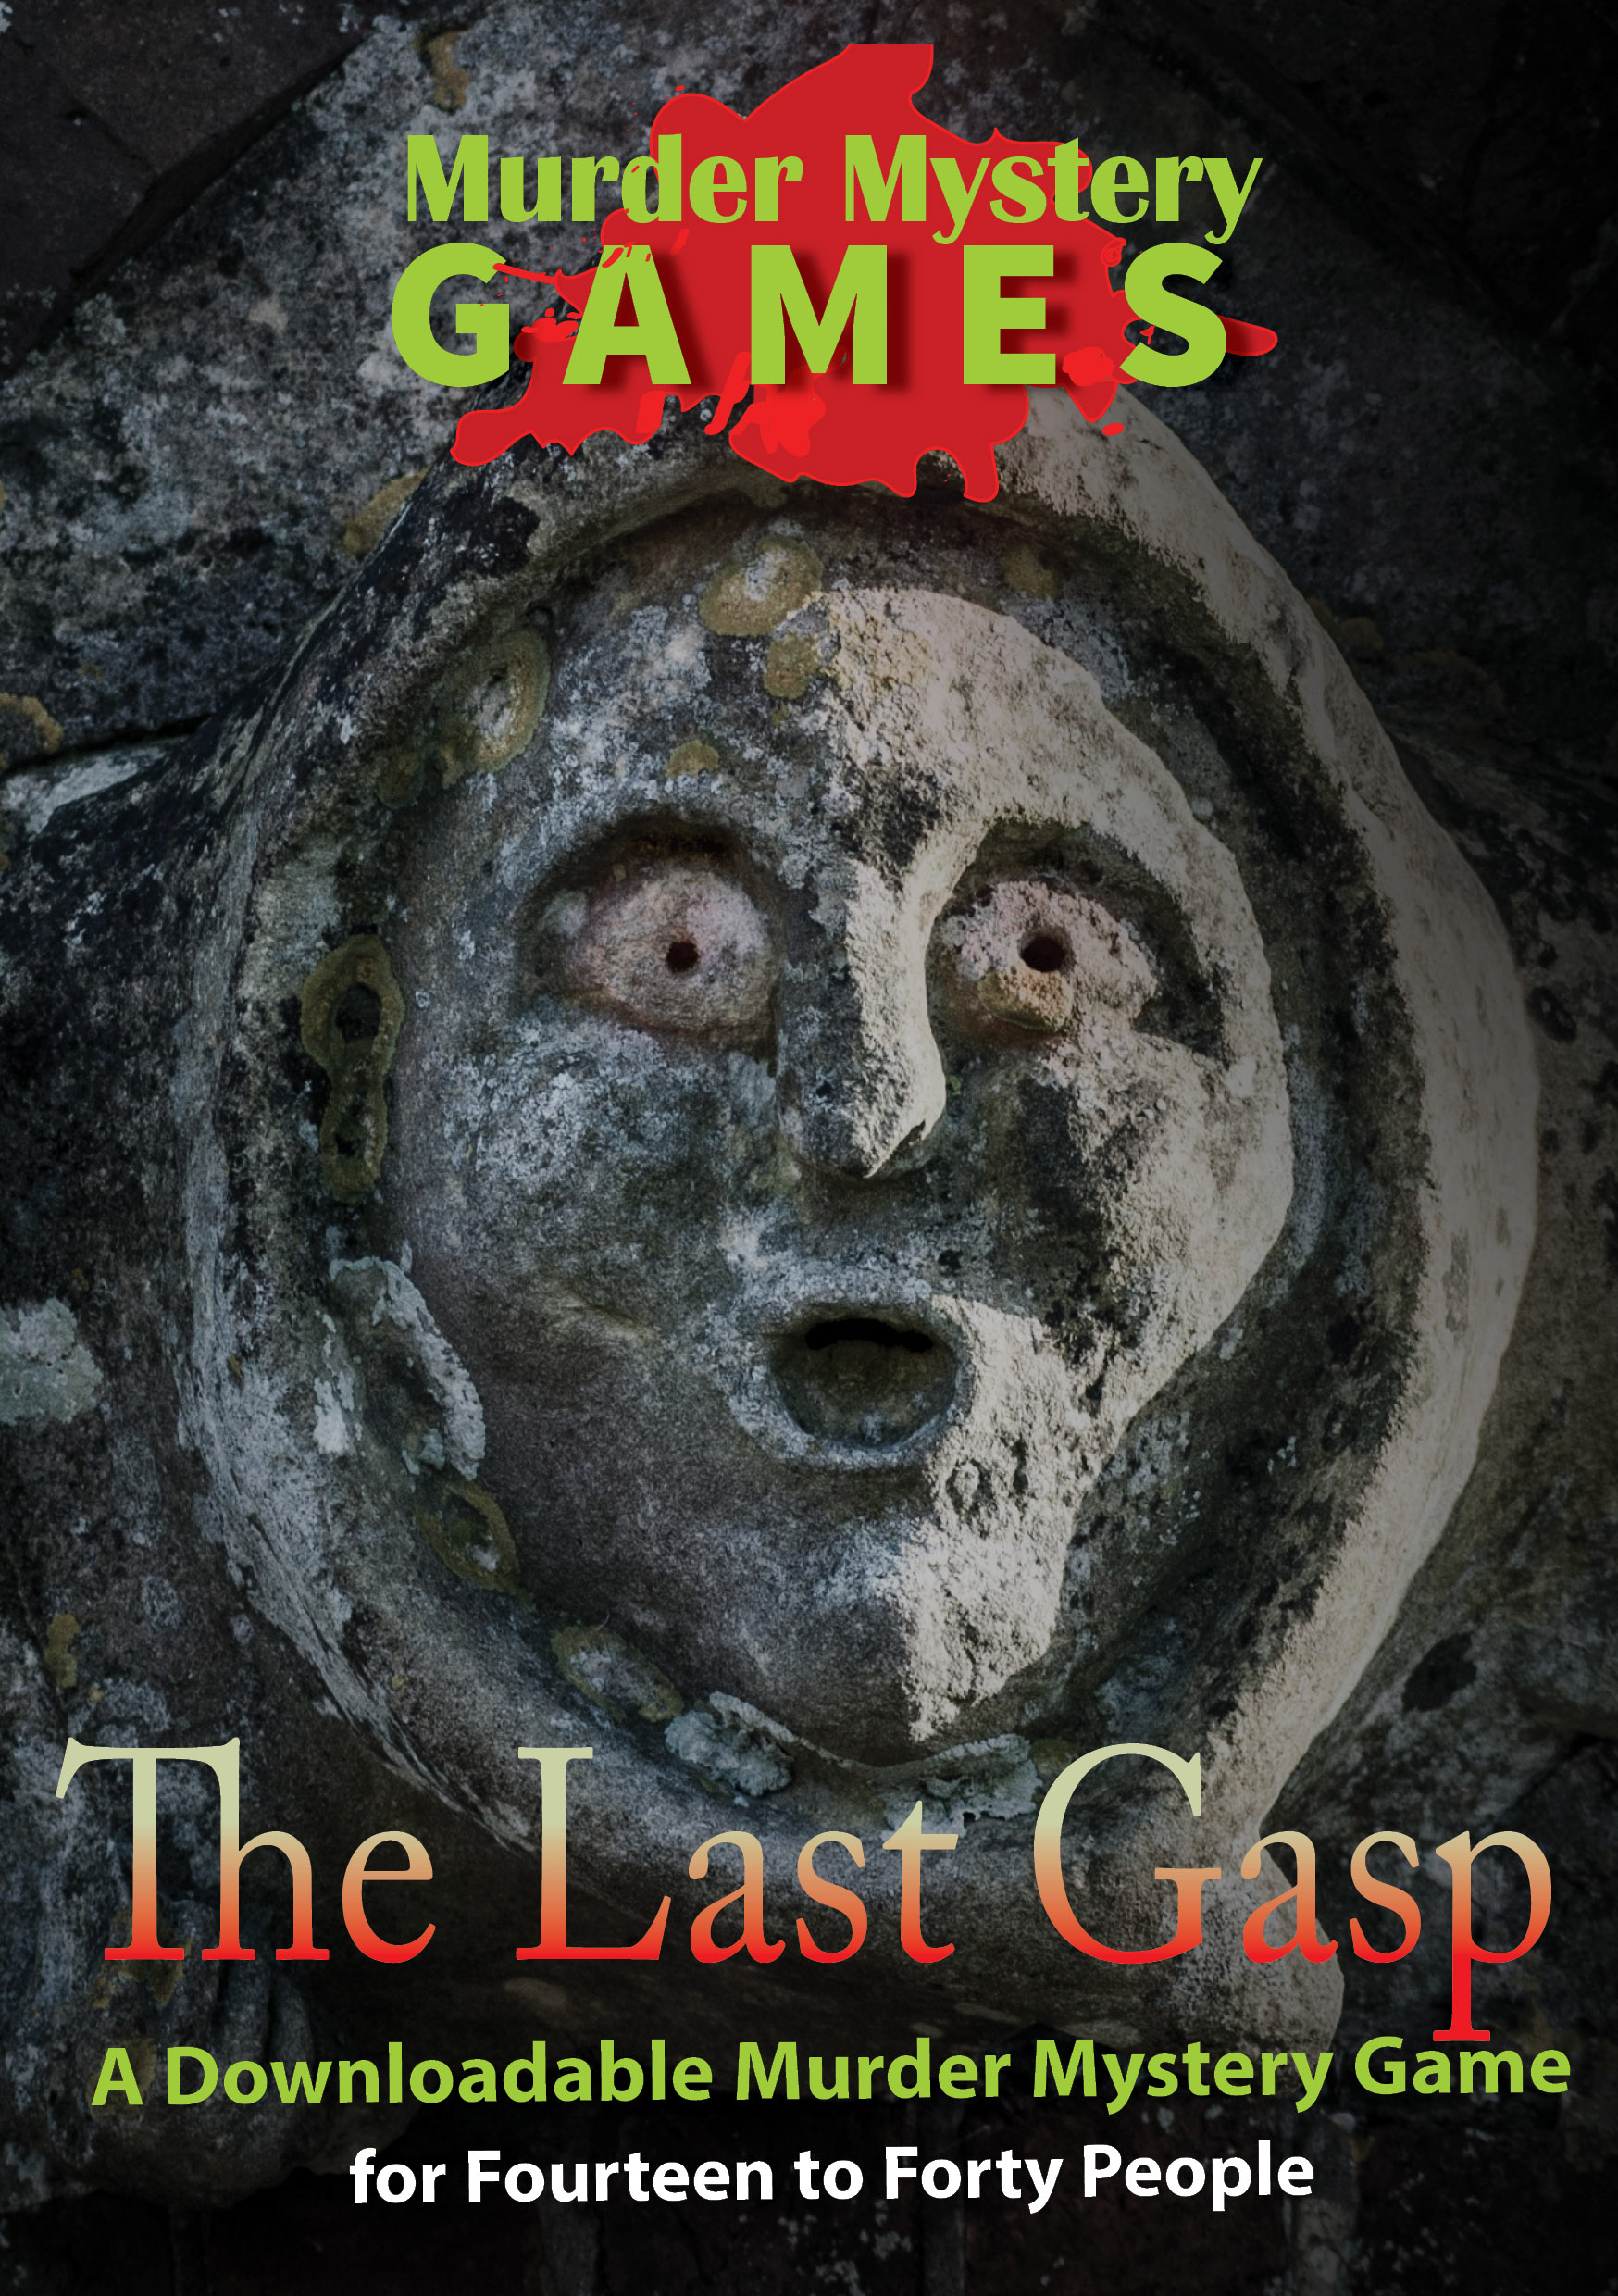 The Last Gasp - A Victorian Murder Mystery Game About a Wicked Earl